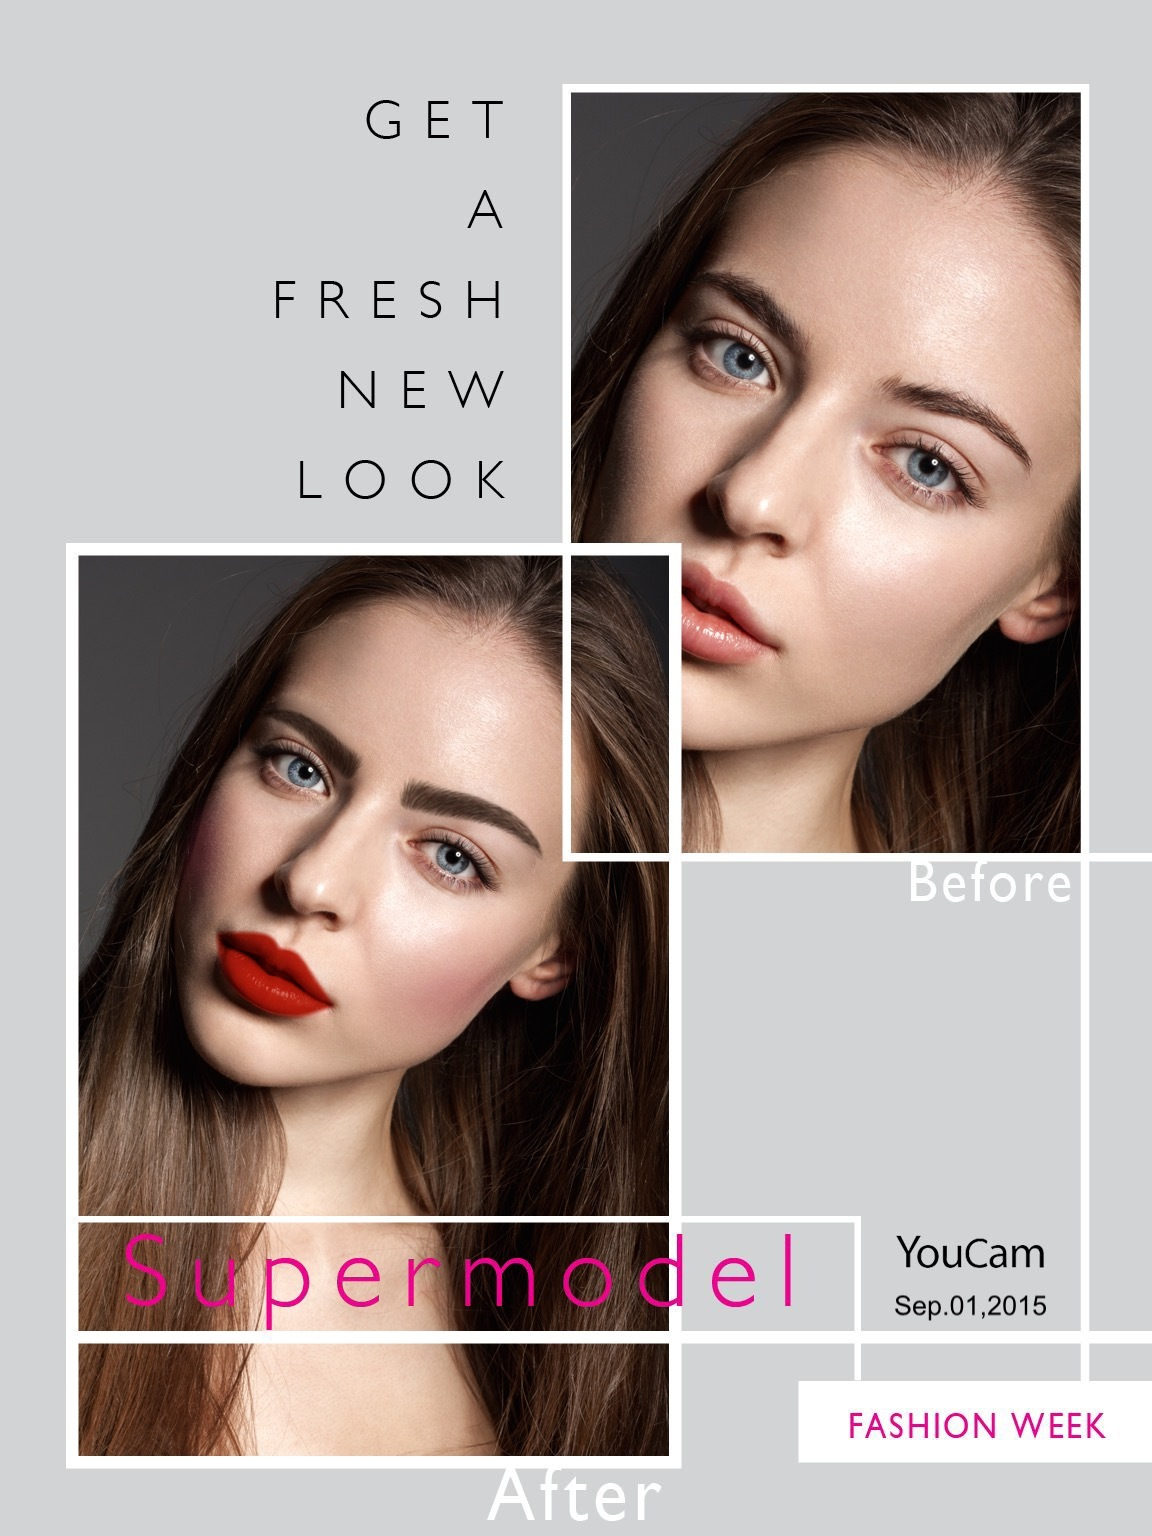 Brings Fashion Week 2015 Runway-Inspired Makeup Looks to YouCam Makeup | Business Wire